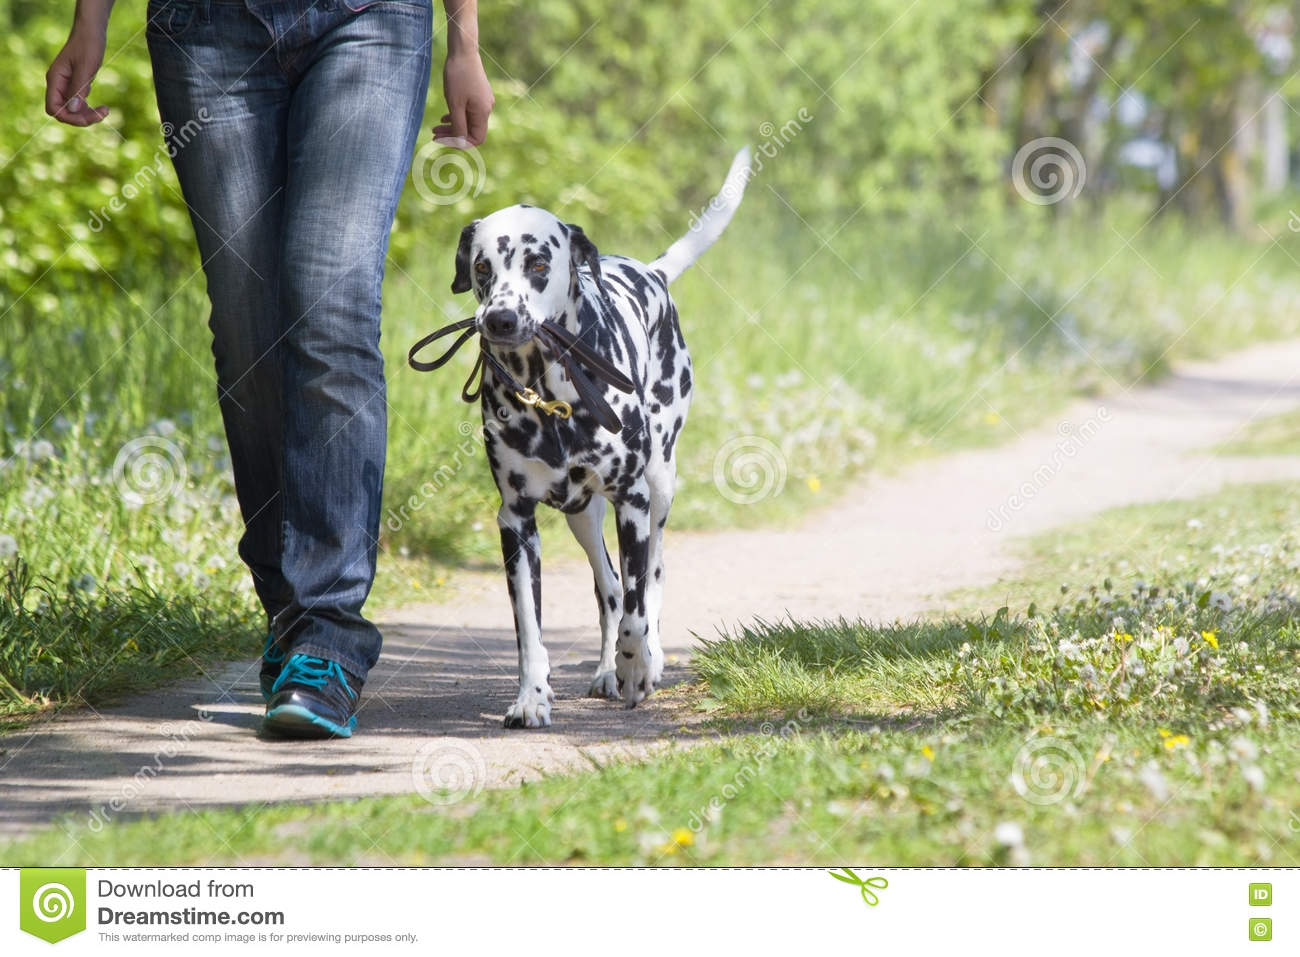 Dog walking with the owner